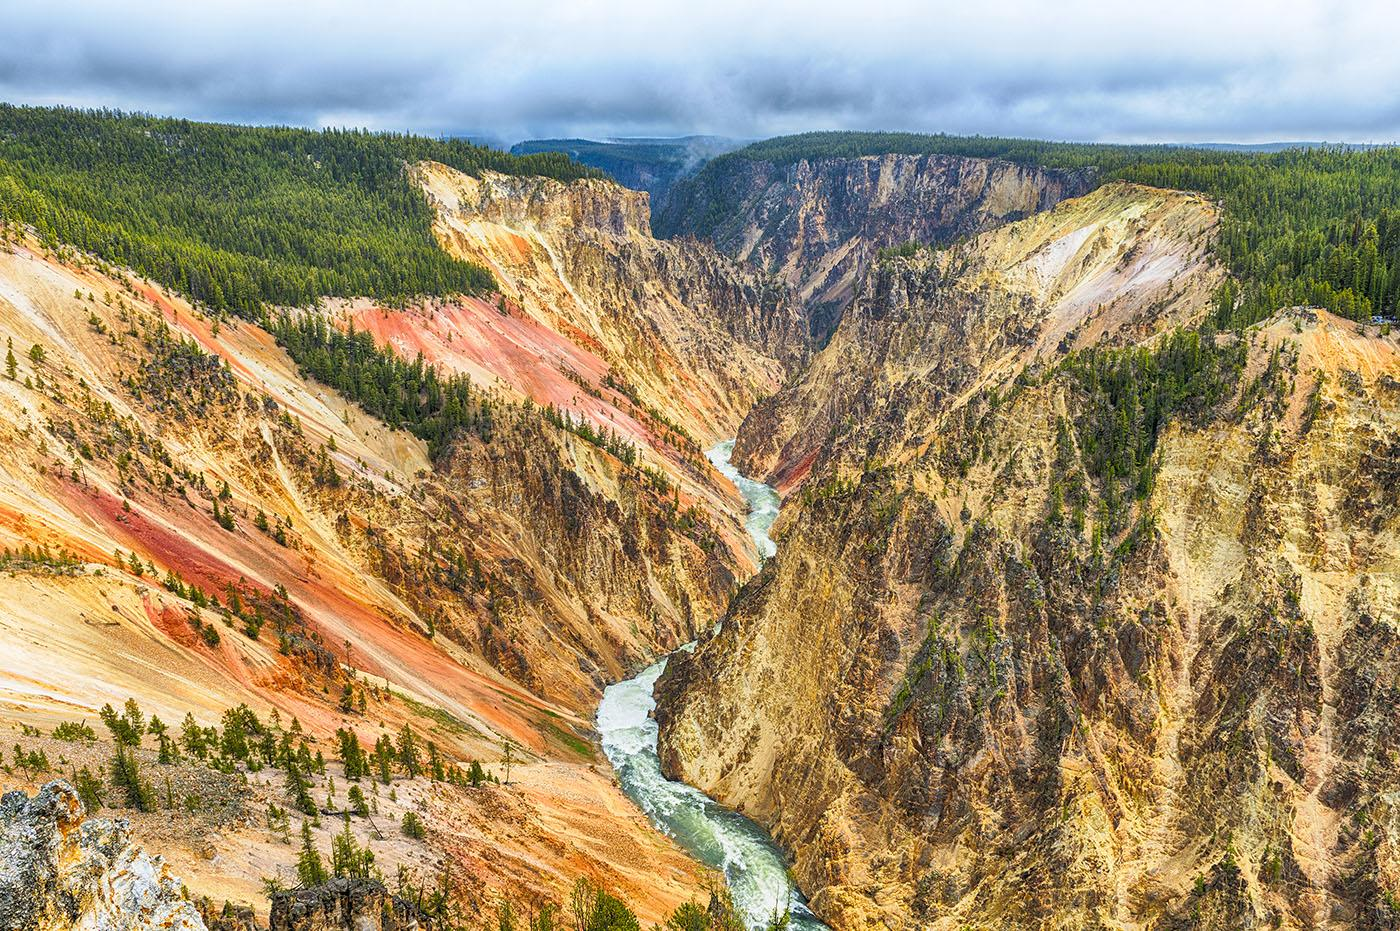 The Yellowstone River. Photo: Filip Fuxa/ Shutterstock.com